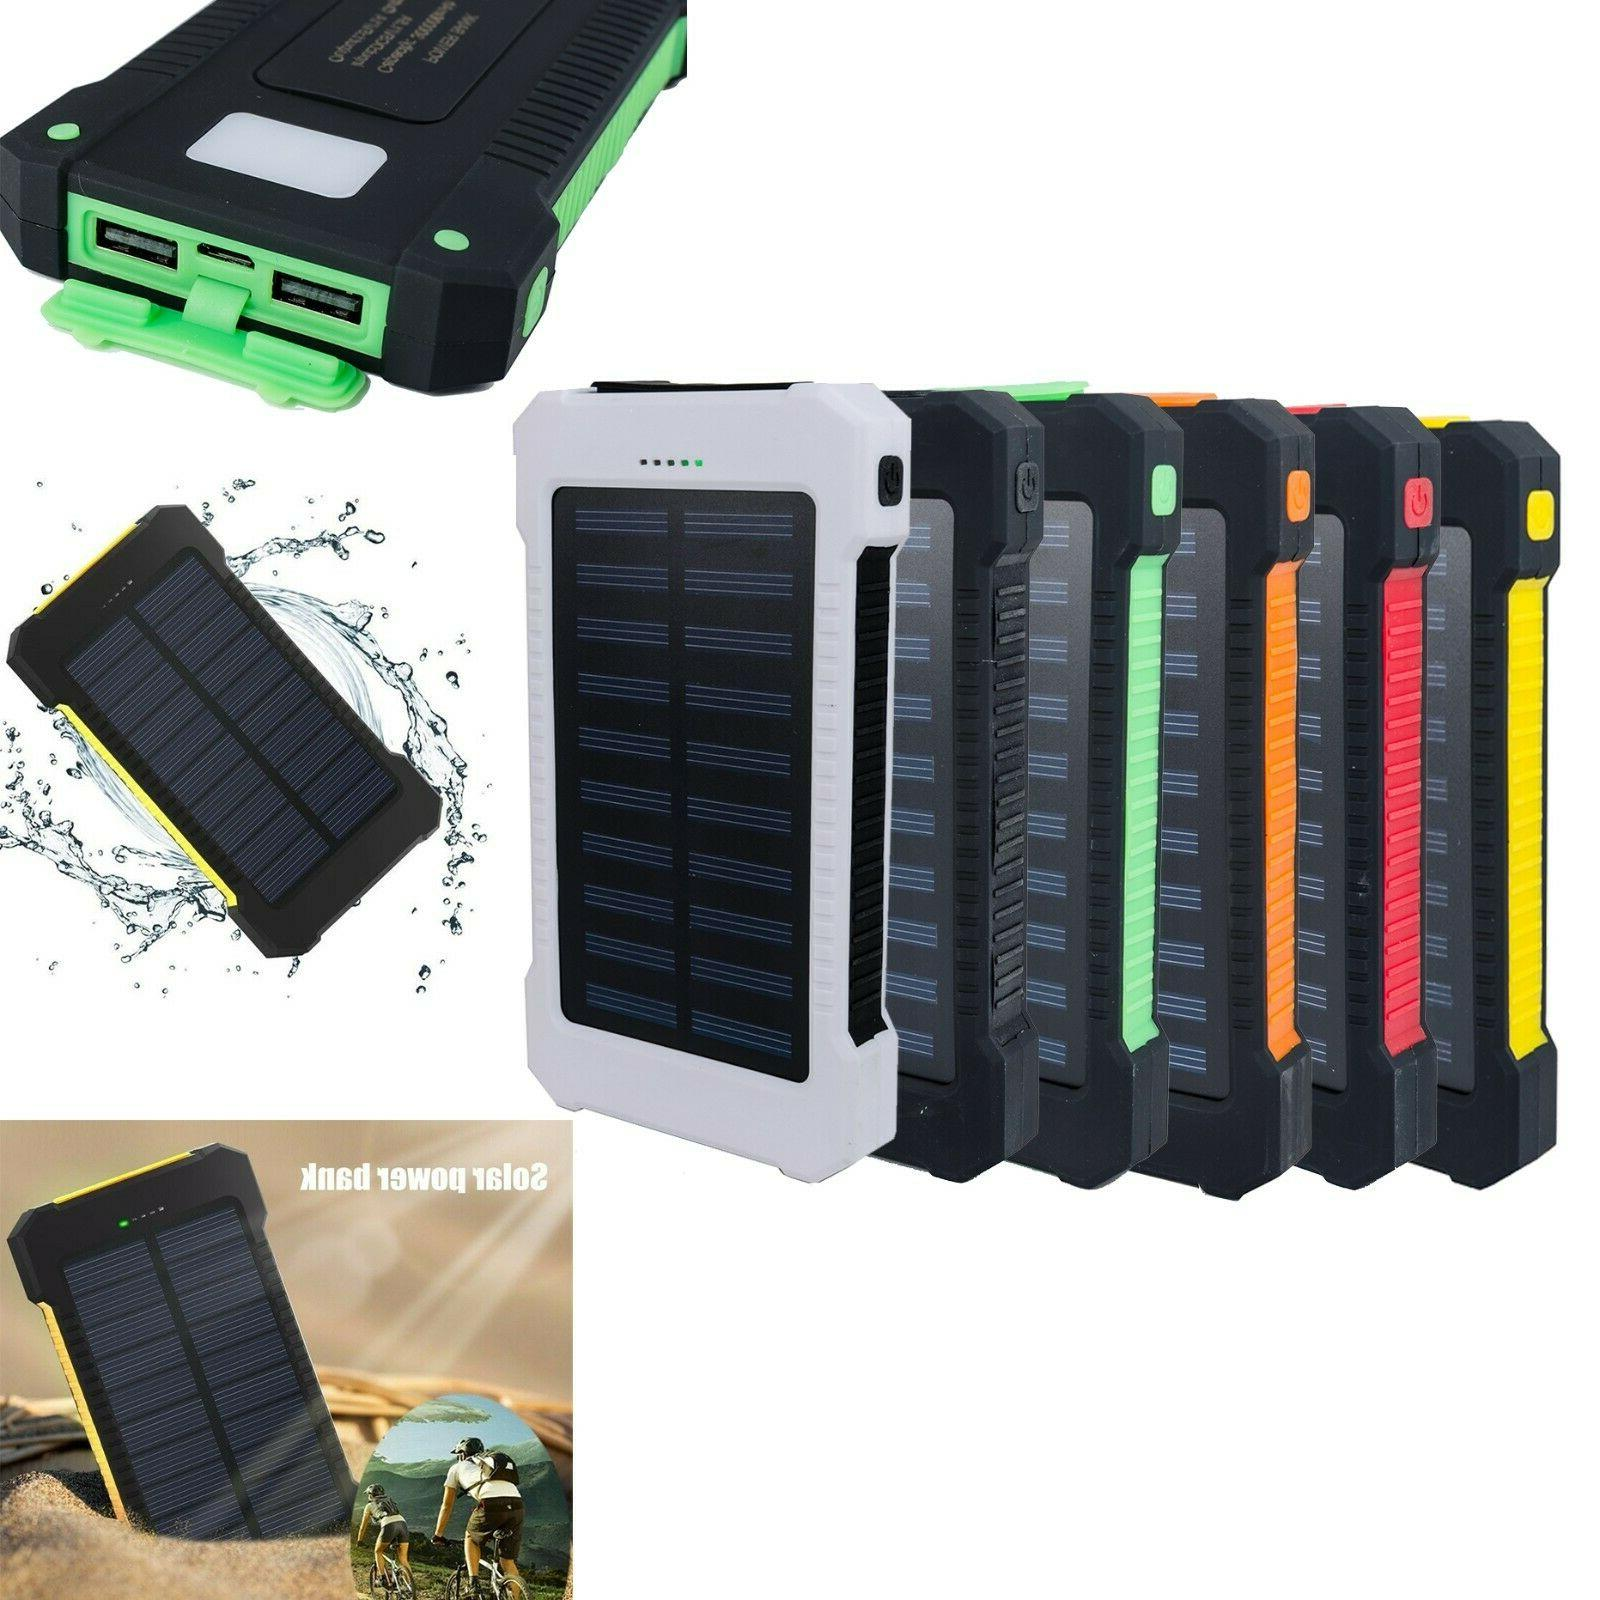 900000mAh Bank Battery Charger For Mobile Phones